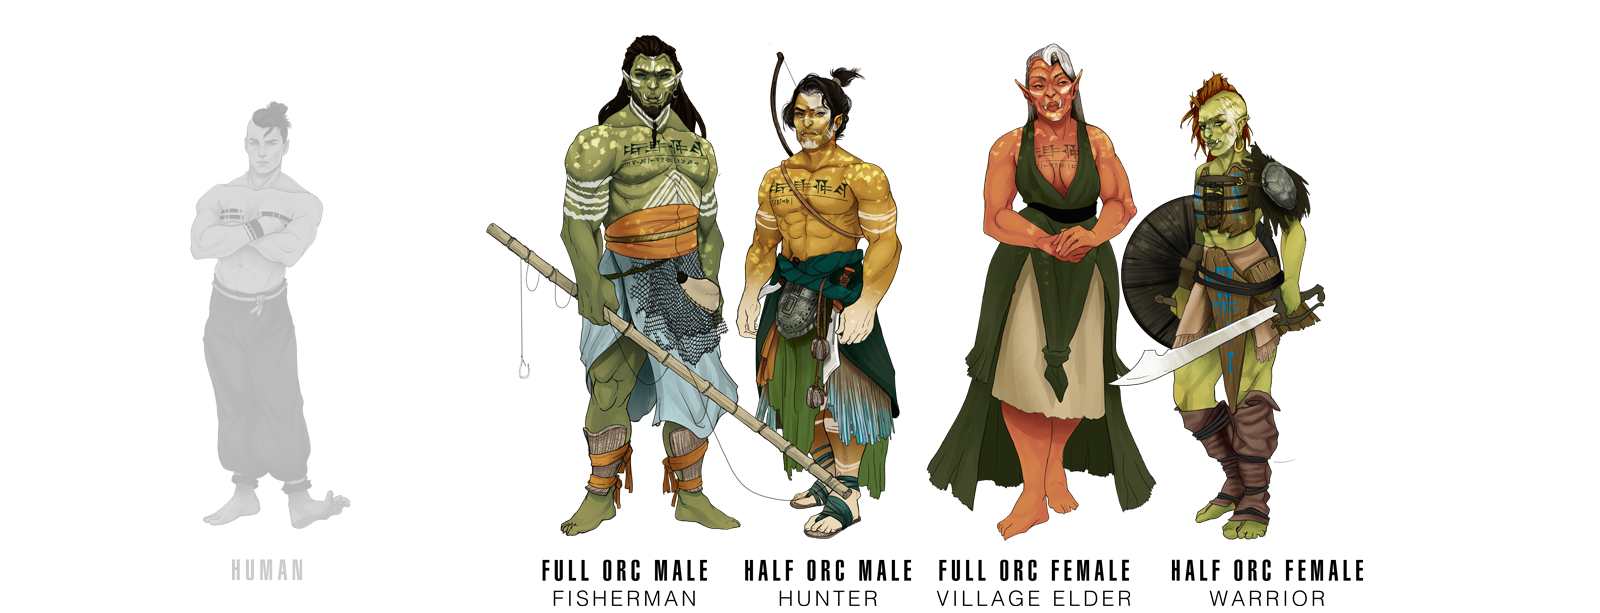 An image of the orc race of verdant